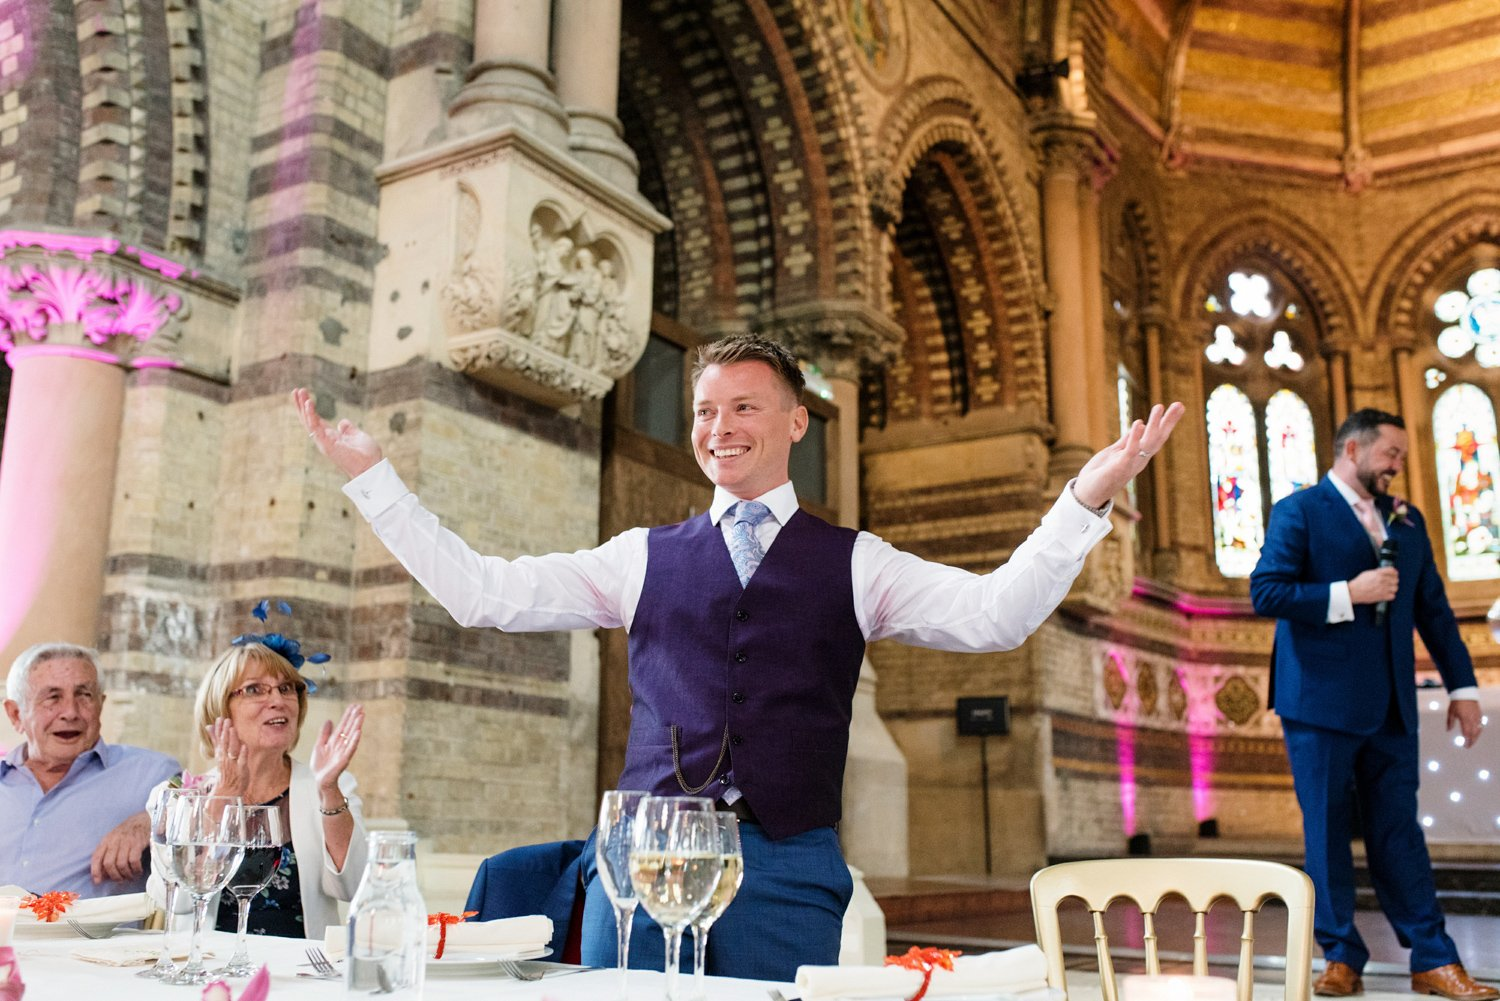 st-stephens-rosslyn-hill-wedding-photography-24